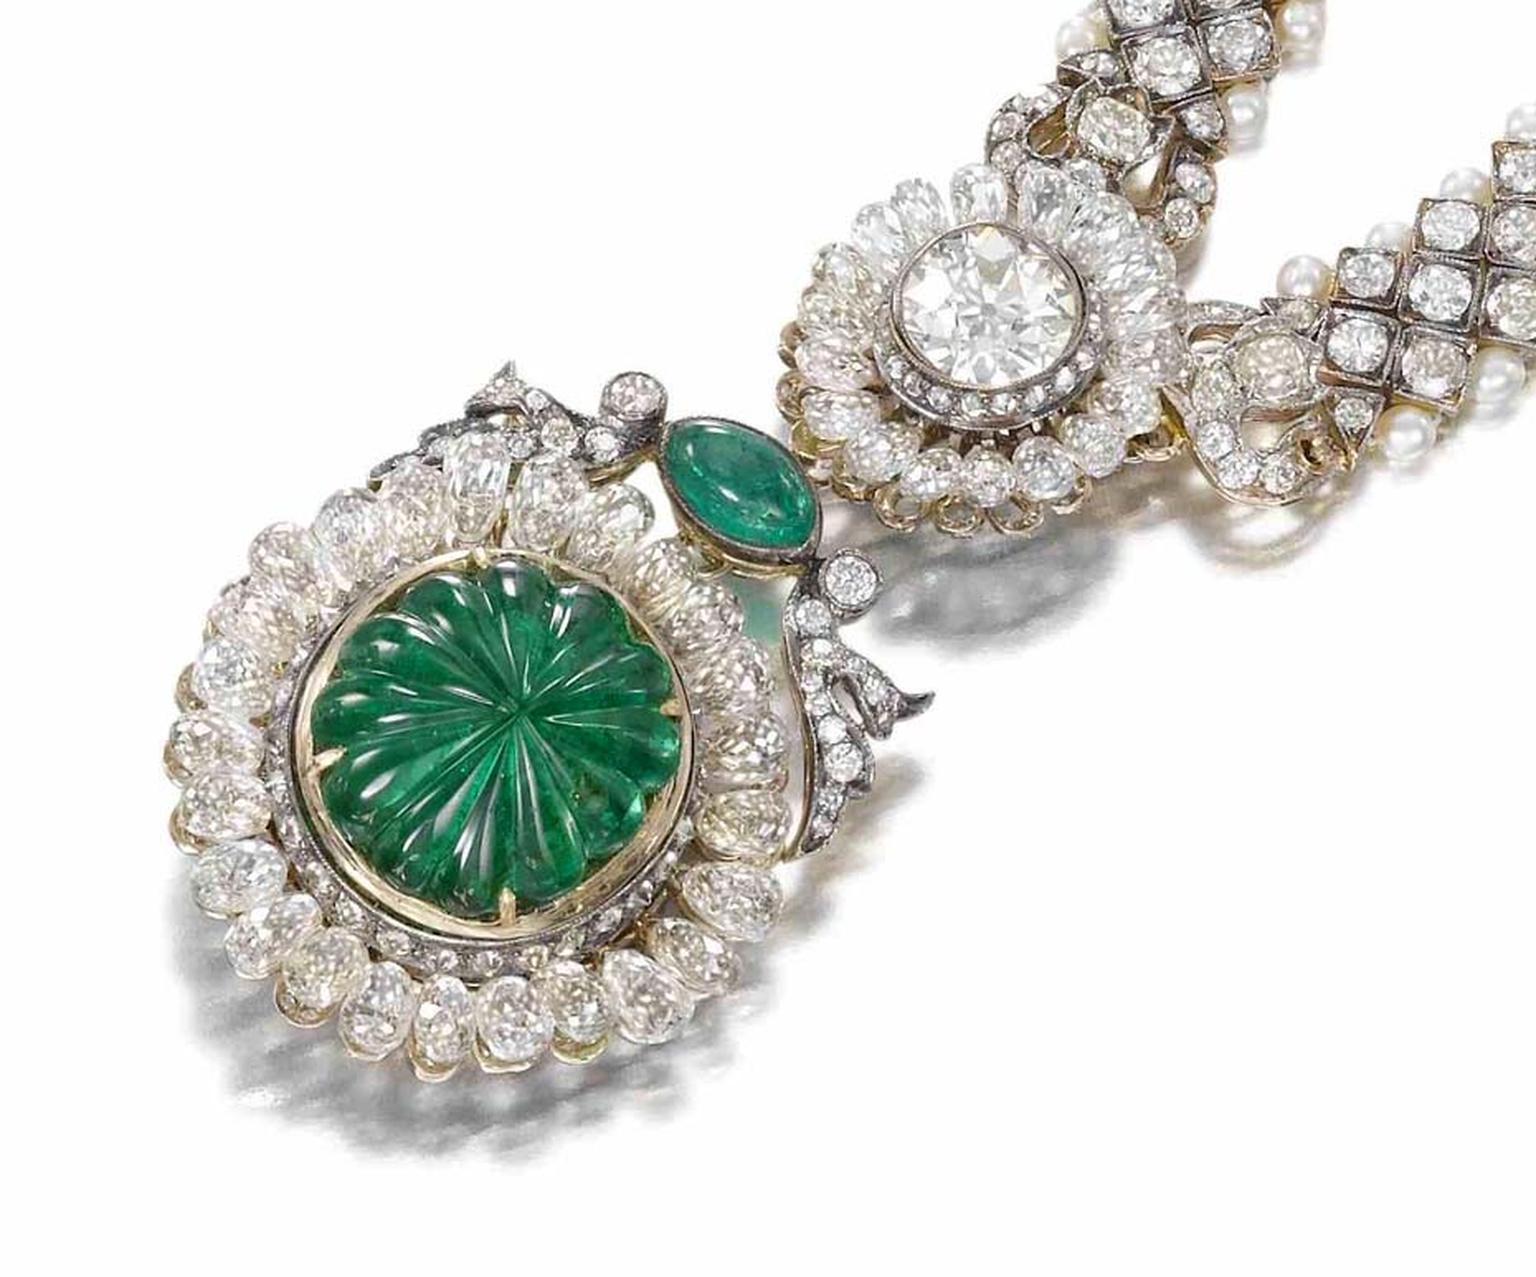 A central fluted emerald, weighing around 7.00ct, is surrounded by elongated briolette-cut diamonds that resemble the beading popular in Indian jewellery at the start of the 20th century.